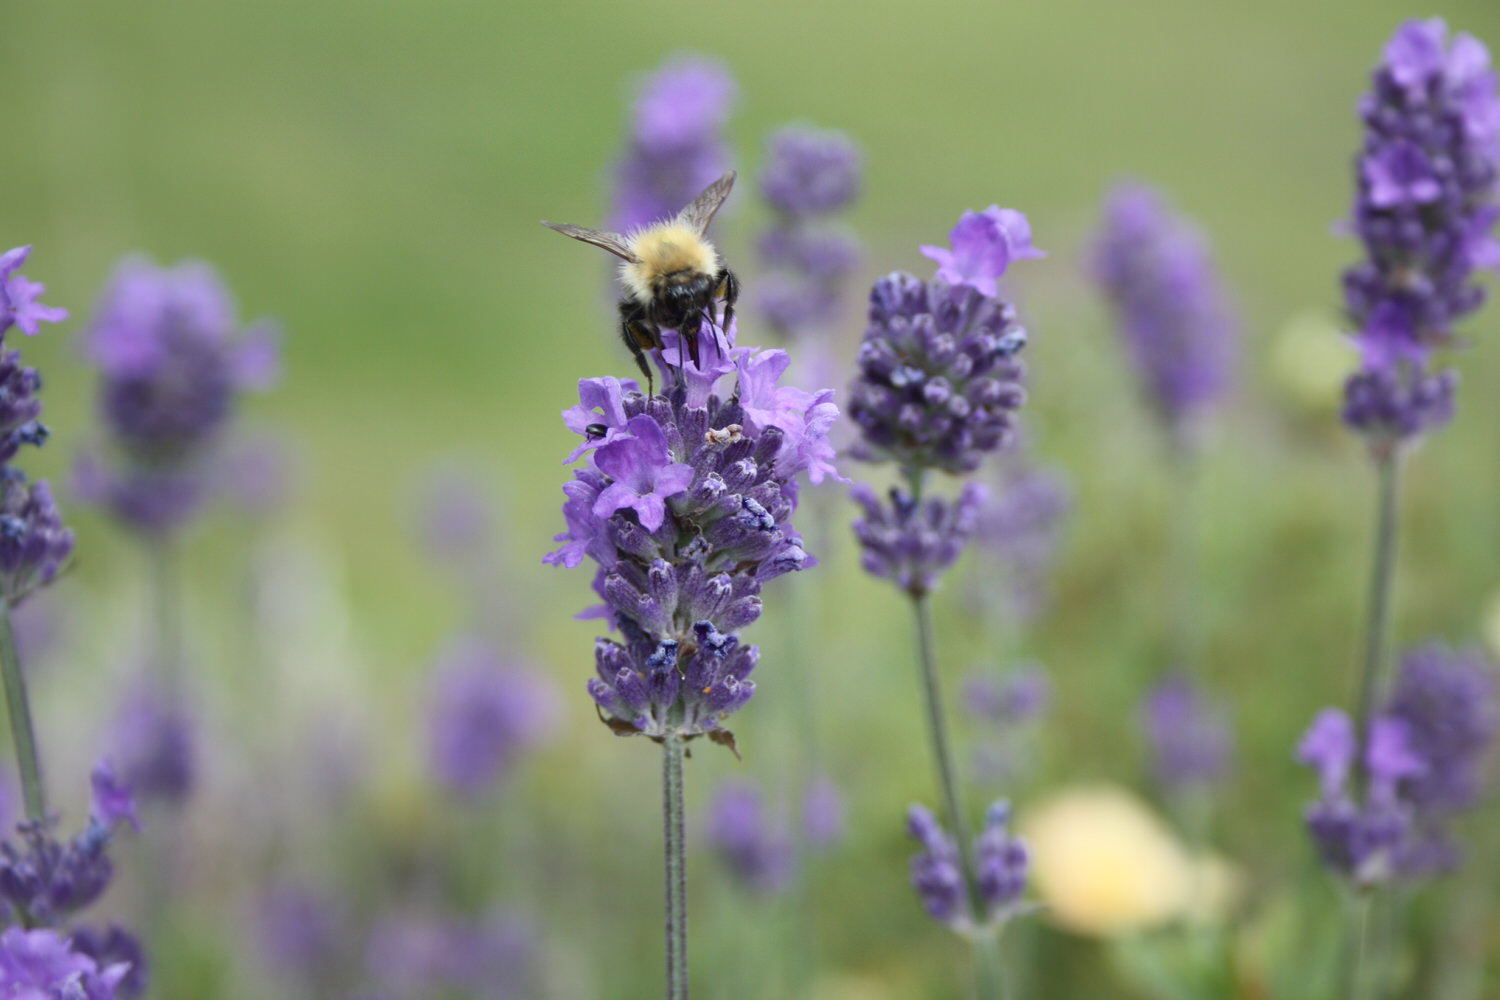 a bee settling on a lavender flower